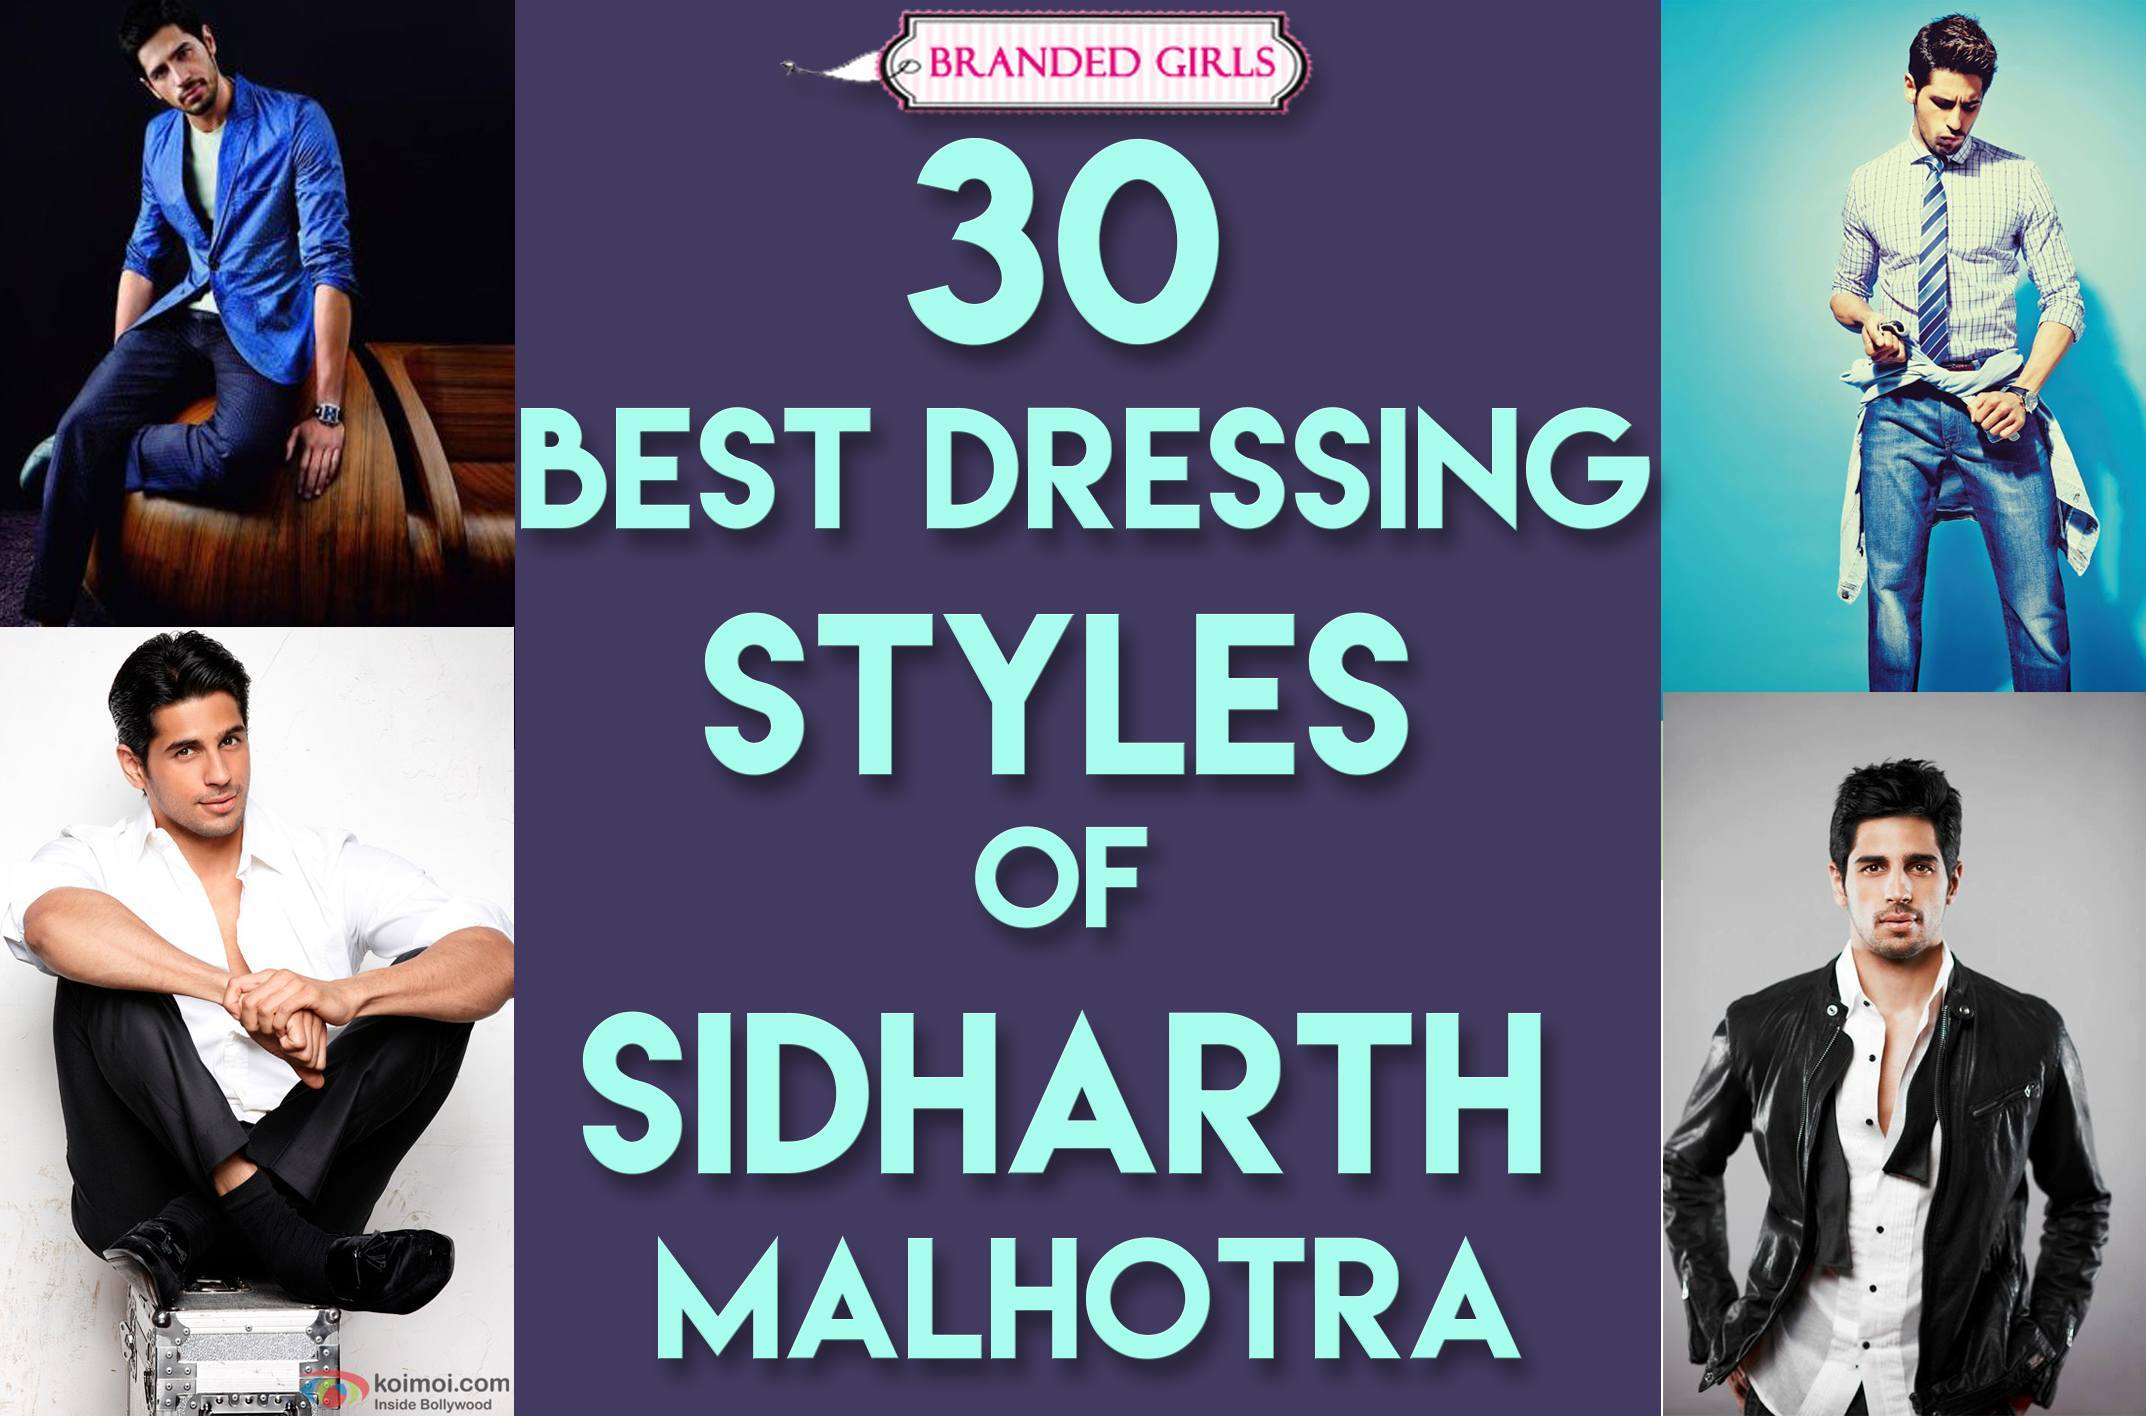 30 best dressing styles of sidharth malhotra